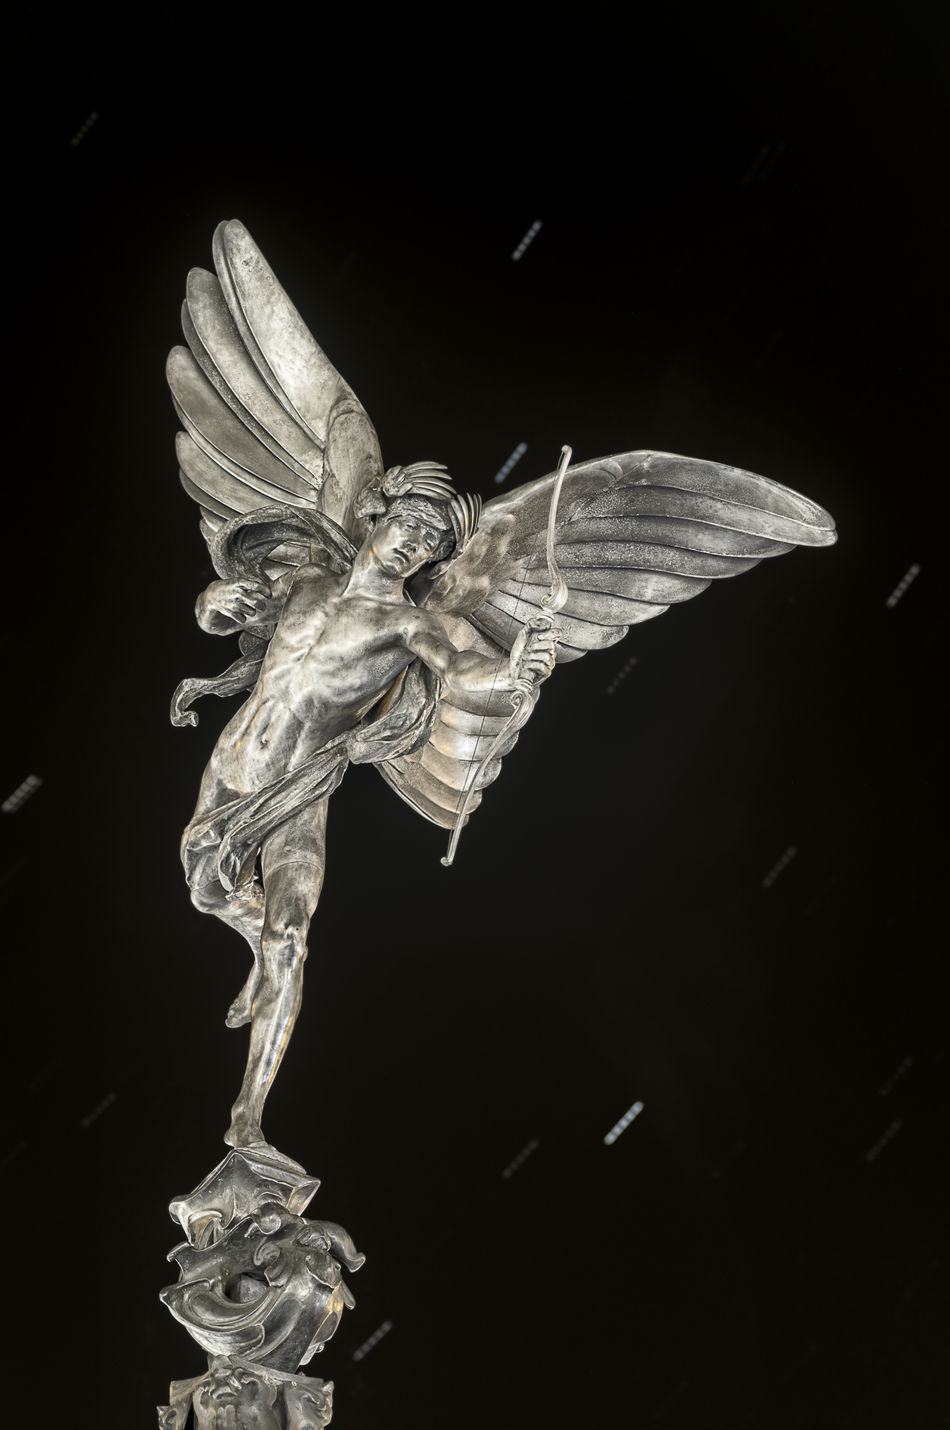 Angel Wings Black Background Bow And Arrow Cement Cementery Cupid Dark Sky Day Enjoying Life Female Likeness History London Night Sky Night Time No People Sculpture Statue Stone United Kingdom